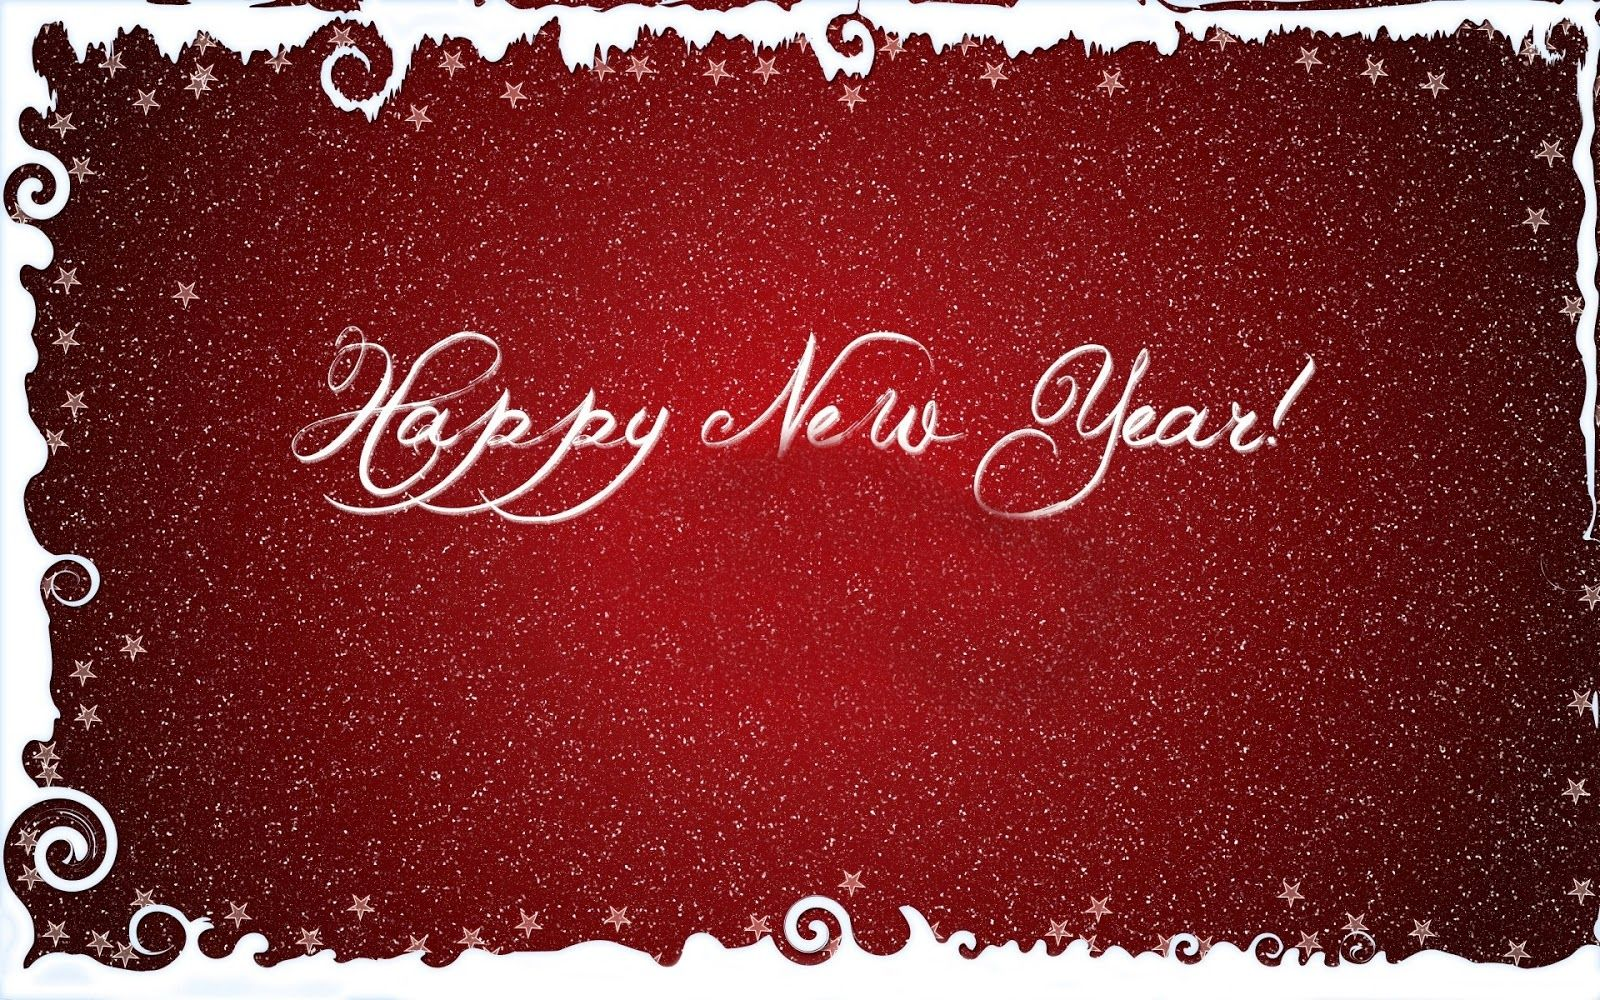 Wall Hit Happy New Year Card Wallpapers Wallpapers Pinterest